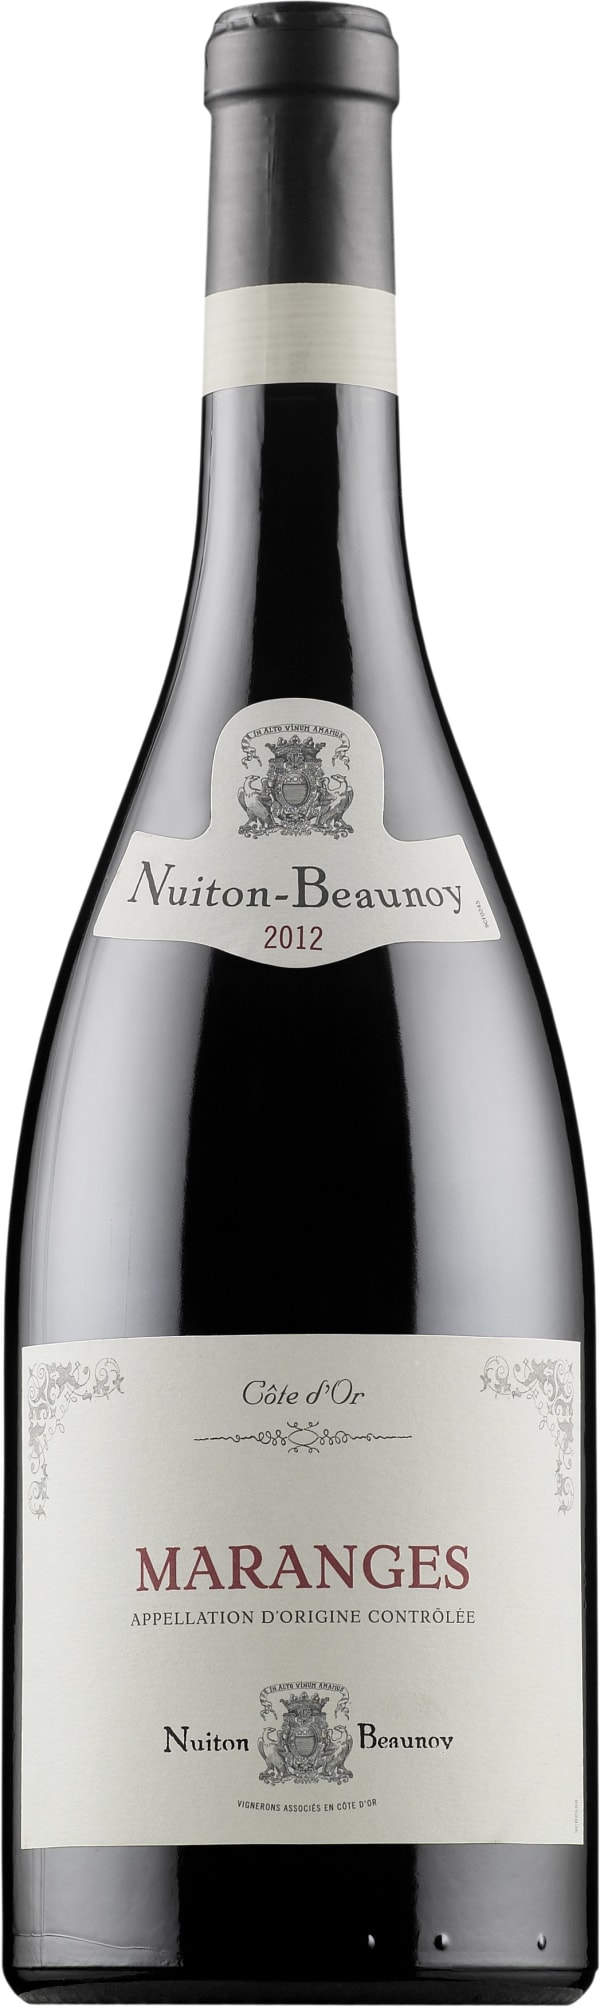 Nuiton-Beaunoy Maranges 2014